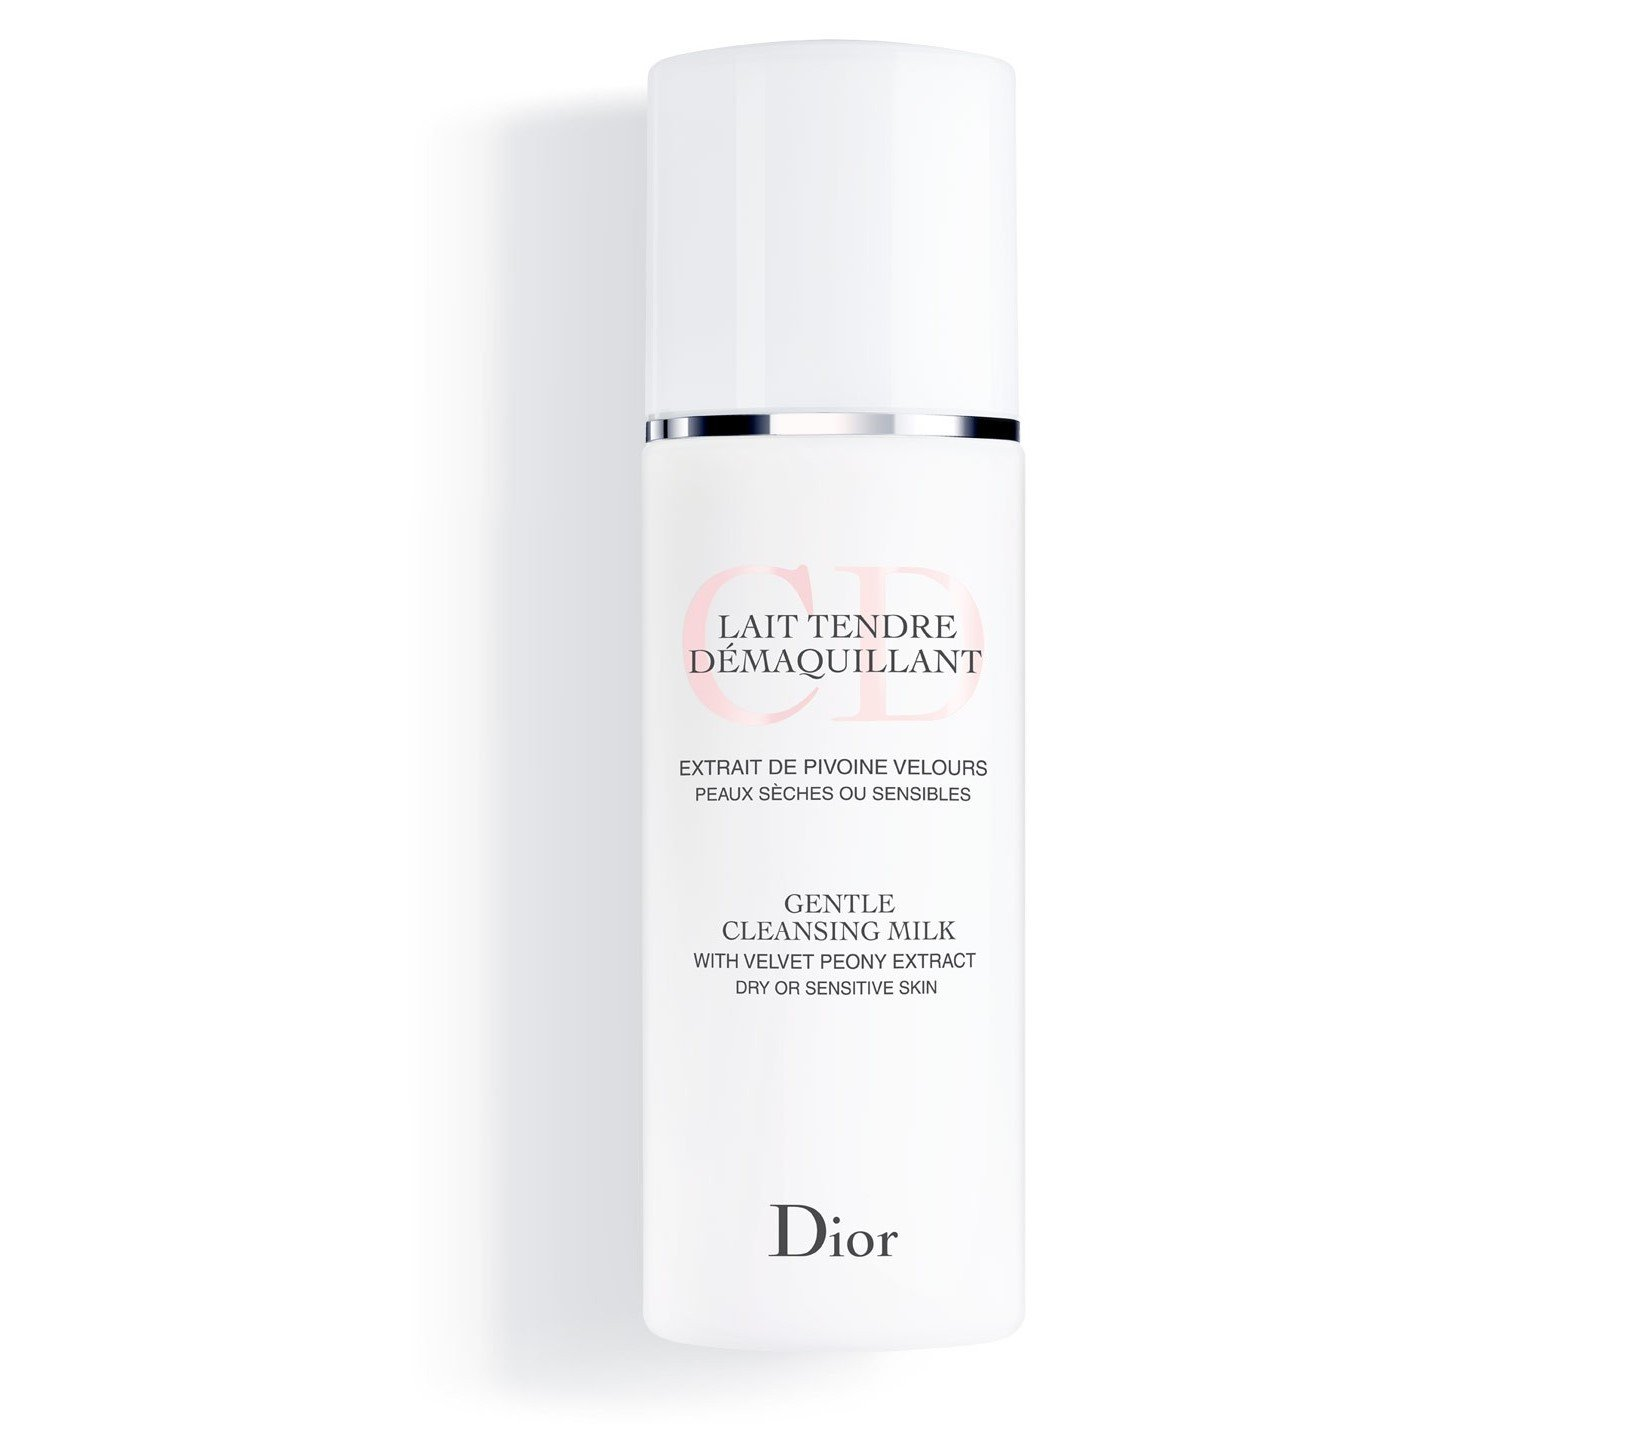 Christian Dior Gentle Cleansing Milk (Dry/Sensitive Skin) for Unisex, 6.7 Ounce